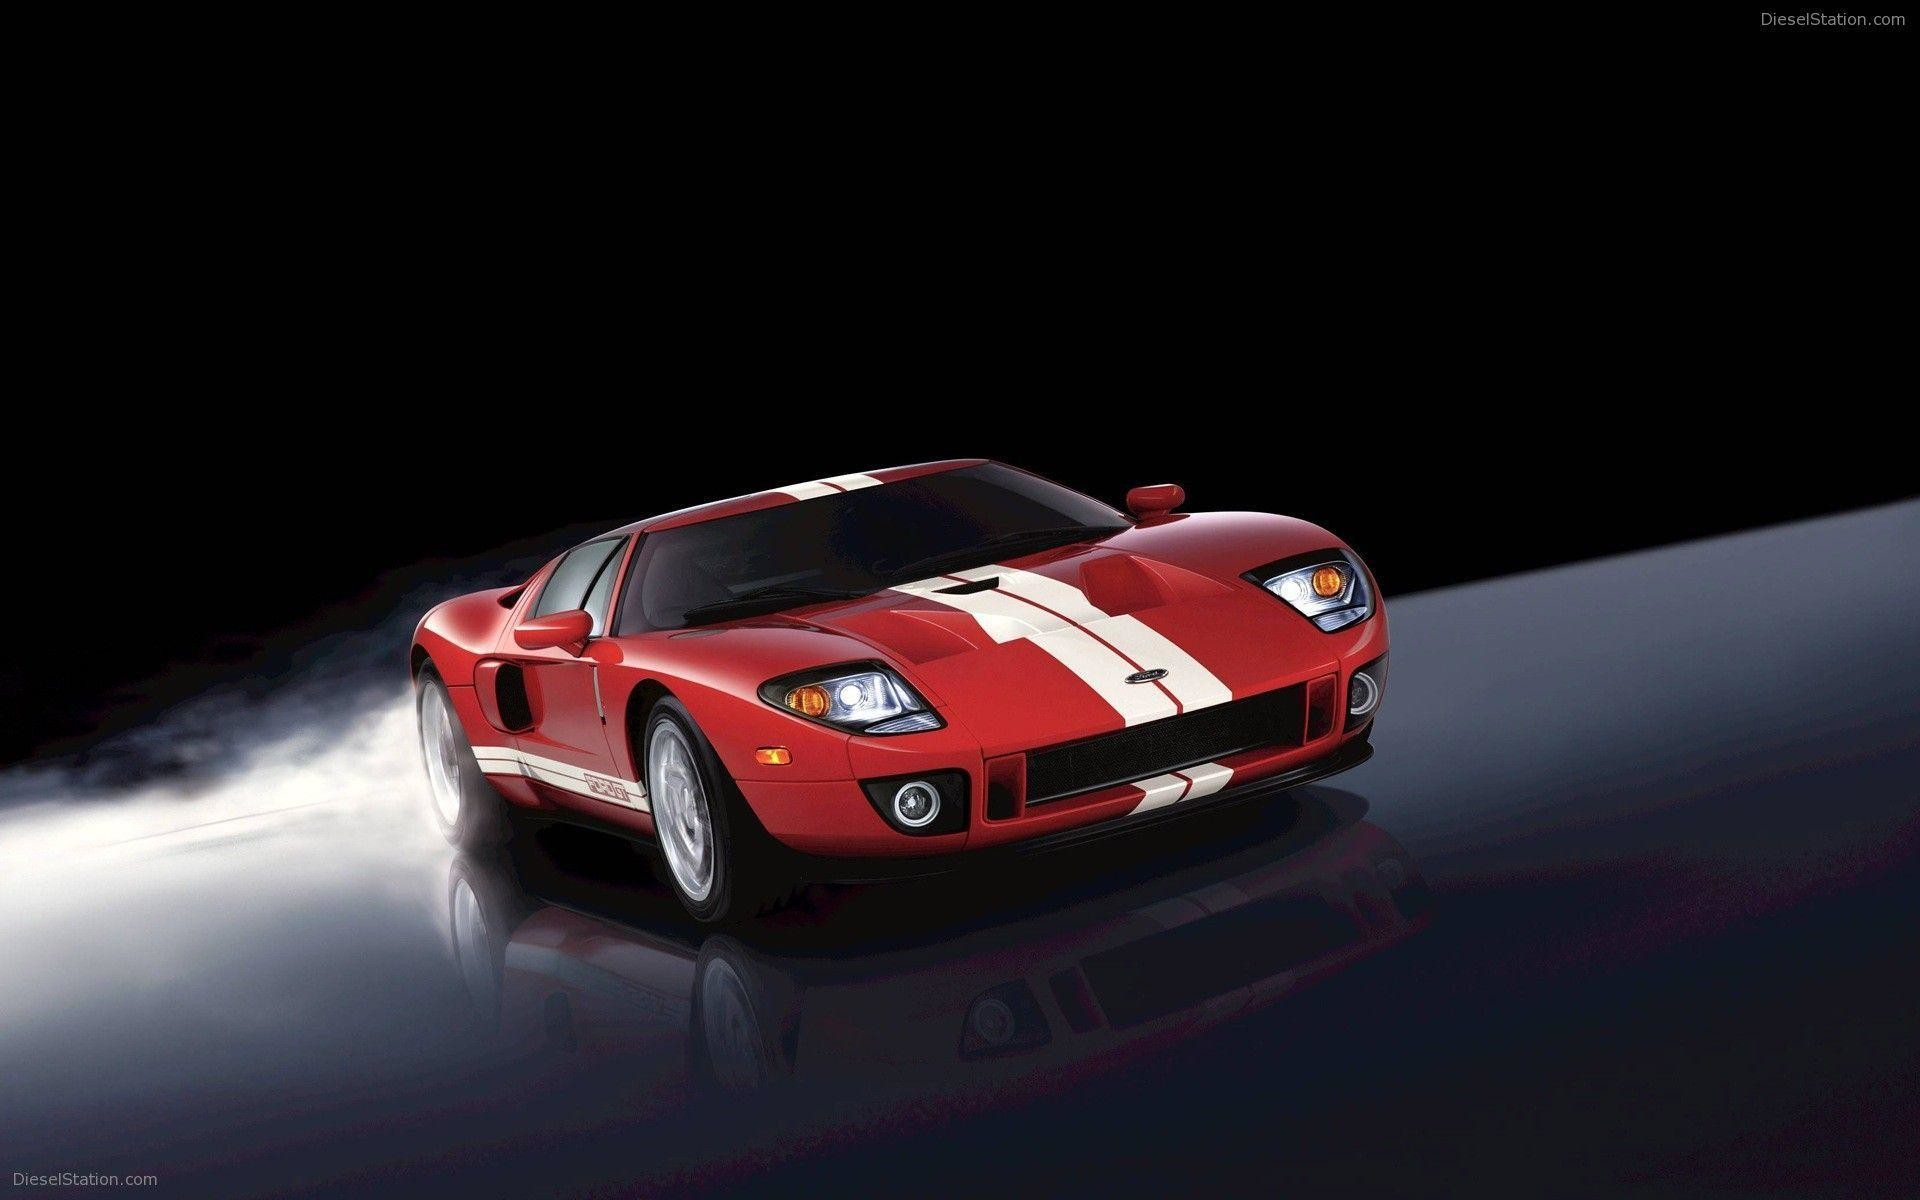 Res: 1920x1200, Ford Gt40 Wallpapers High Resolution Wallpaper Cars Ford Gt Car .